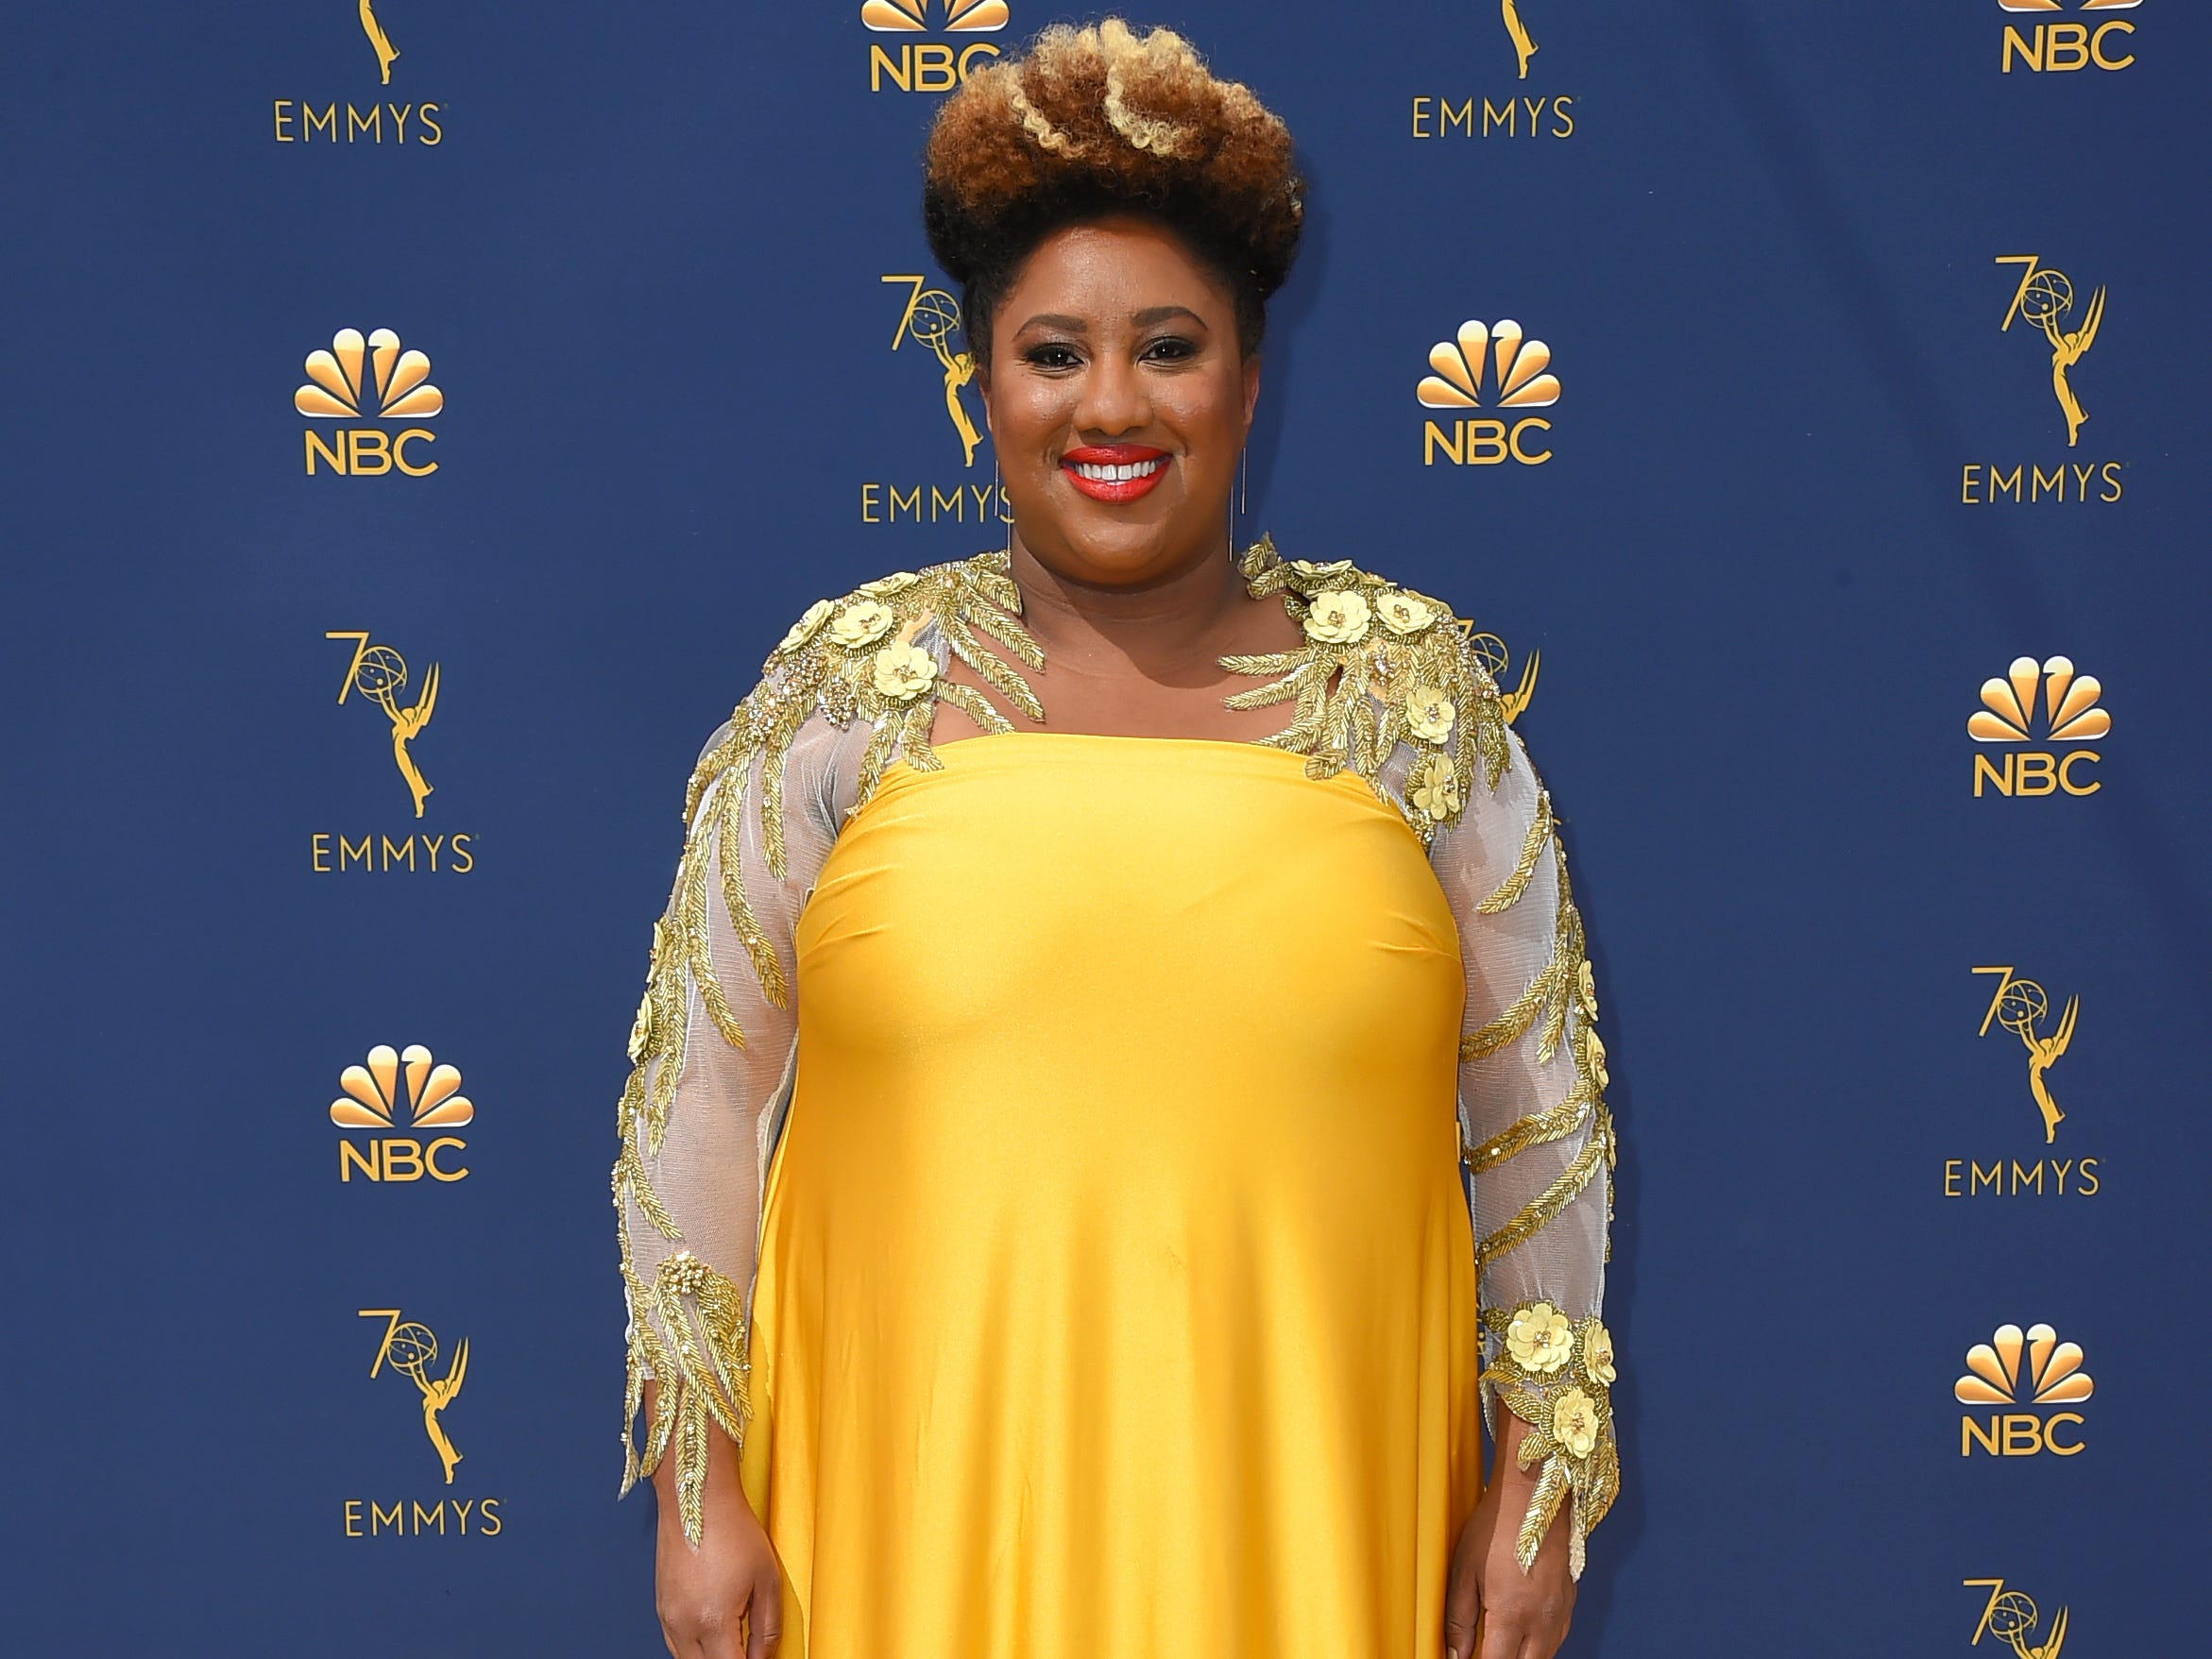 Ashley Nicole Black arrives at the 70th Primetime Emmy Awards on Monday, Sept. 17, 2018, at the Microsoft Theater in Los Angeles.